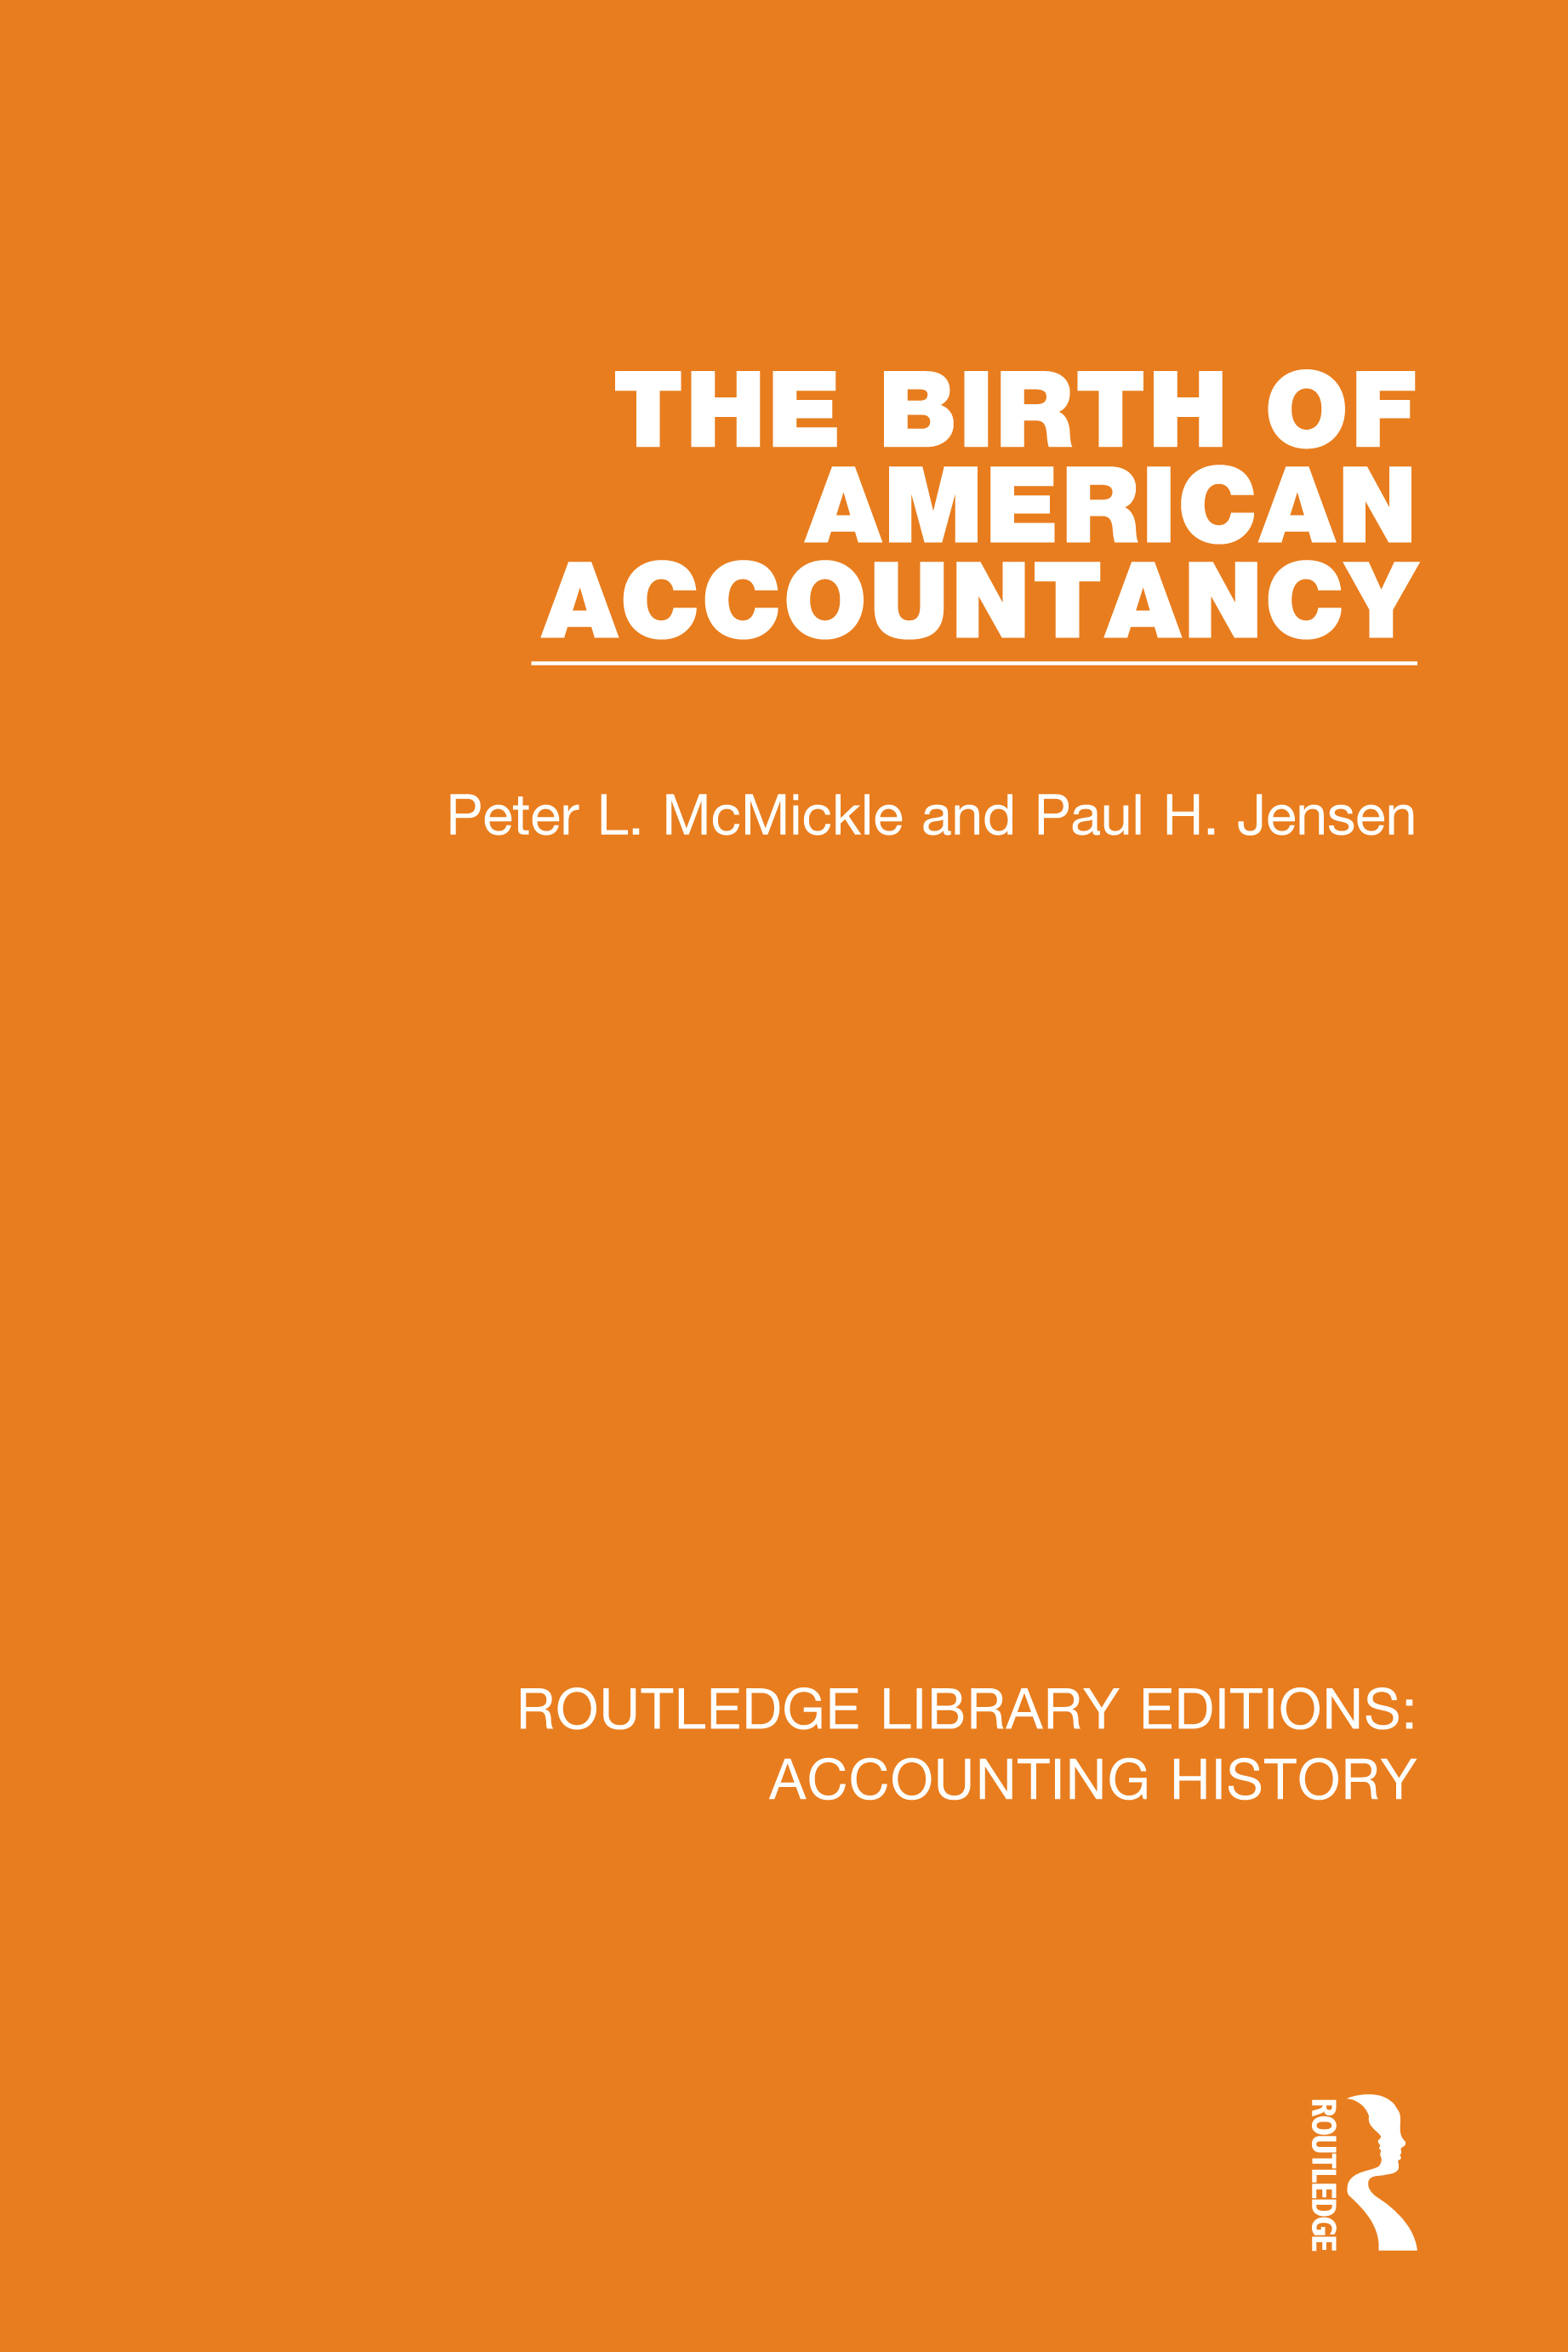 The Birth of American Accountancy